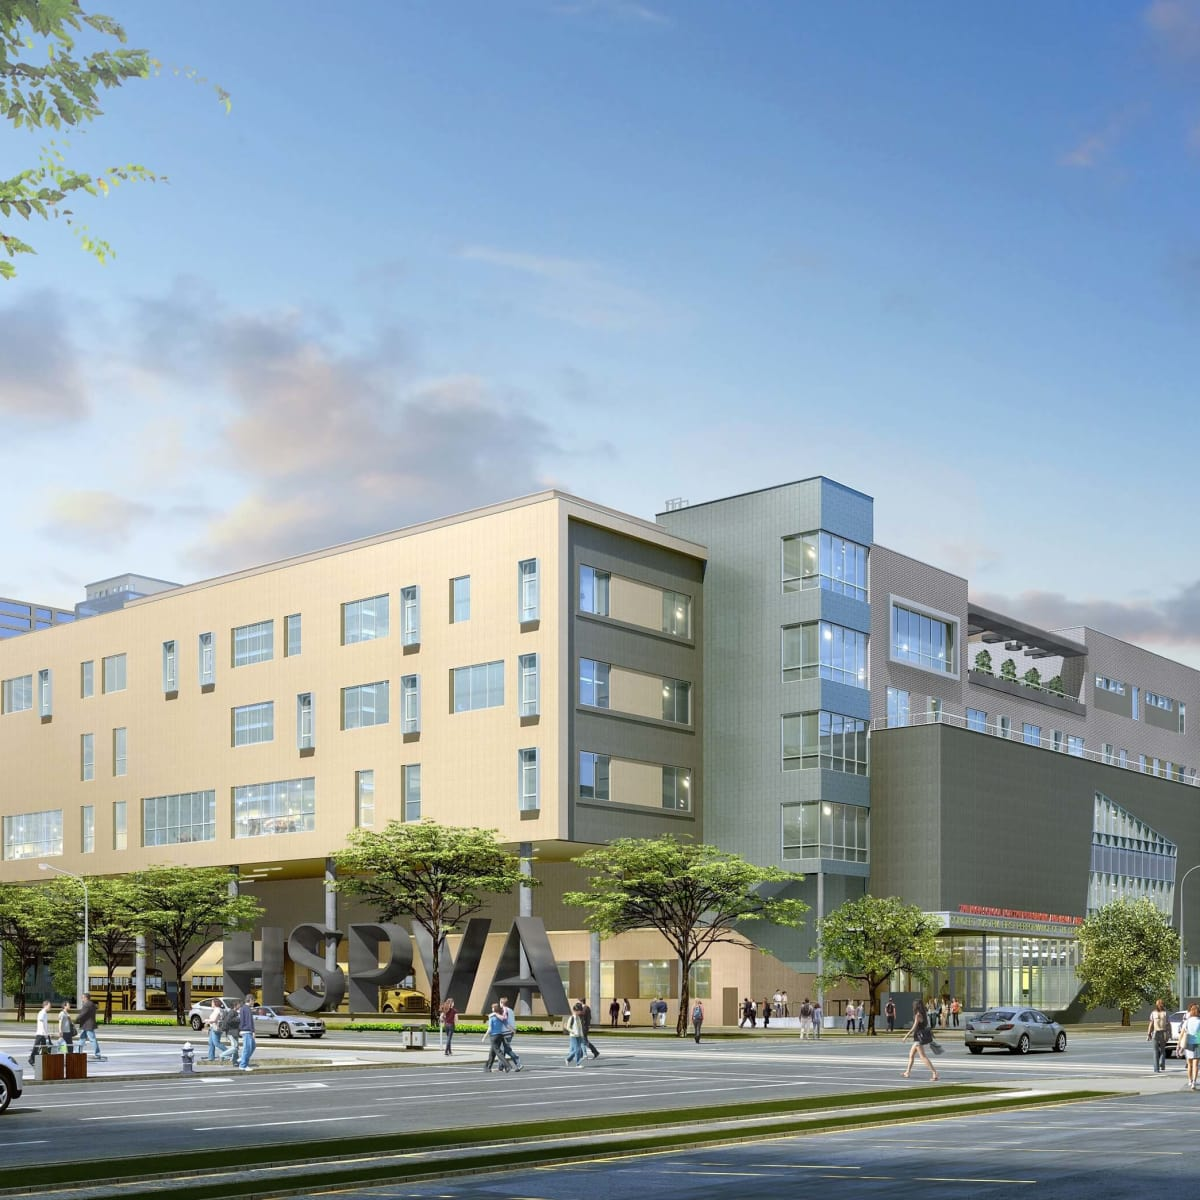 Rendering of new HSPVA building day view